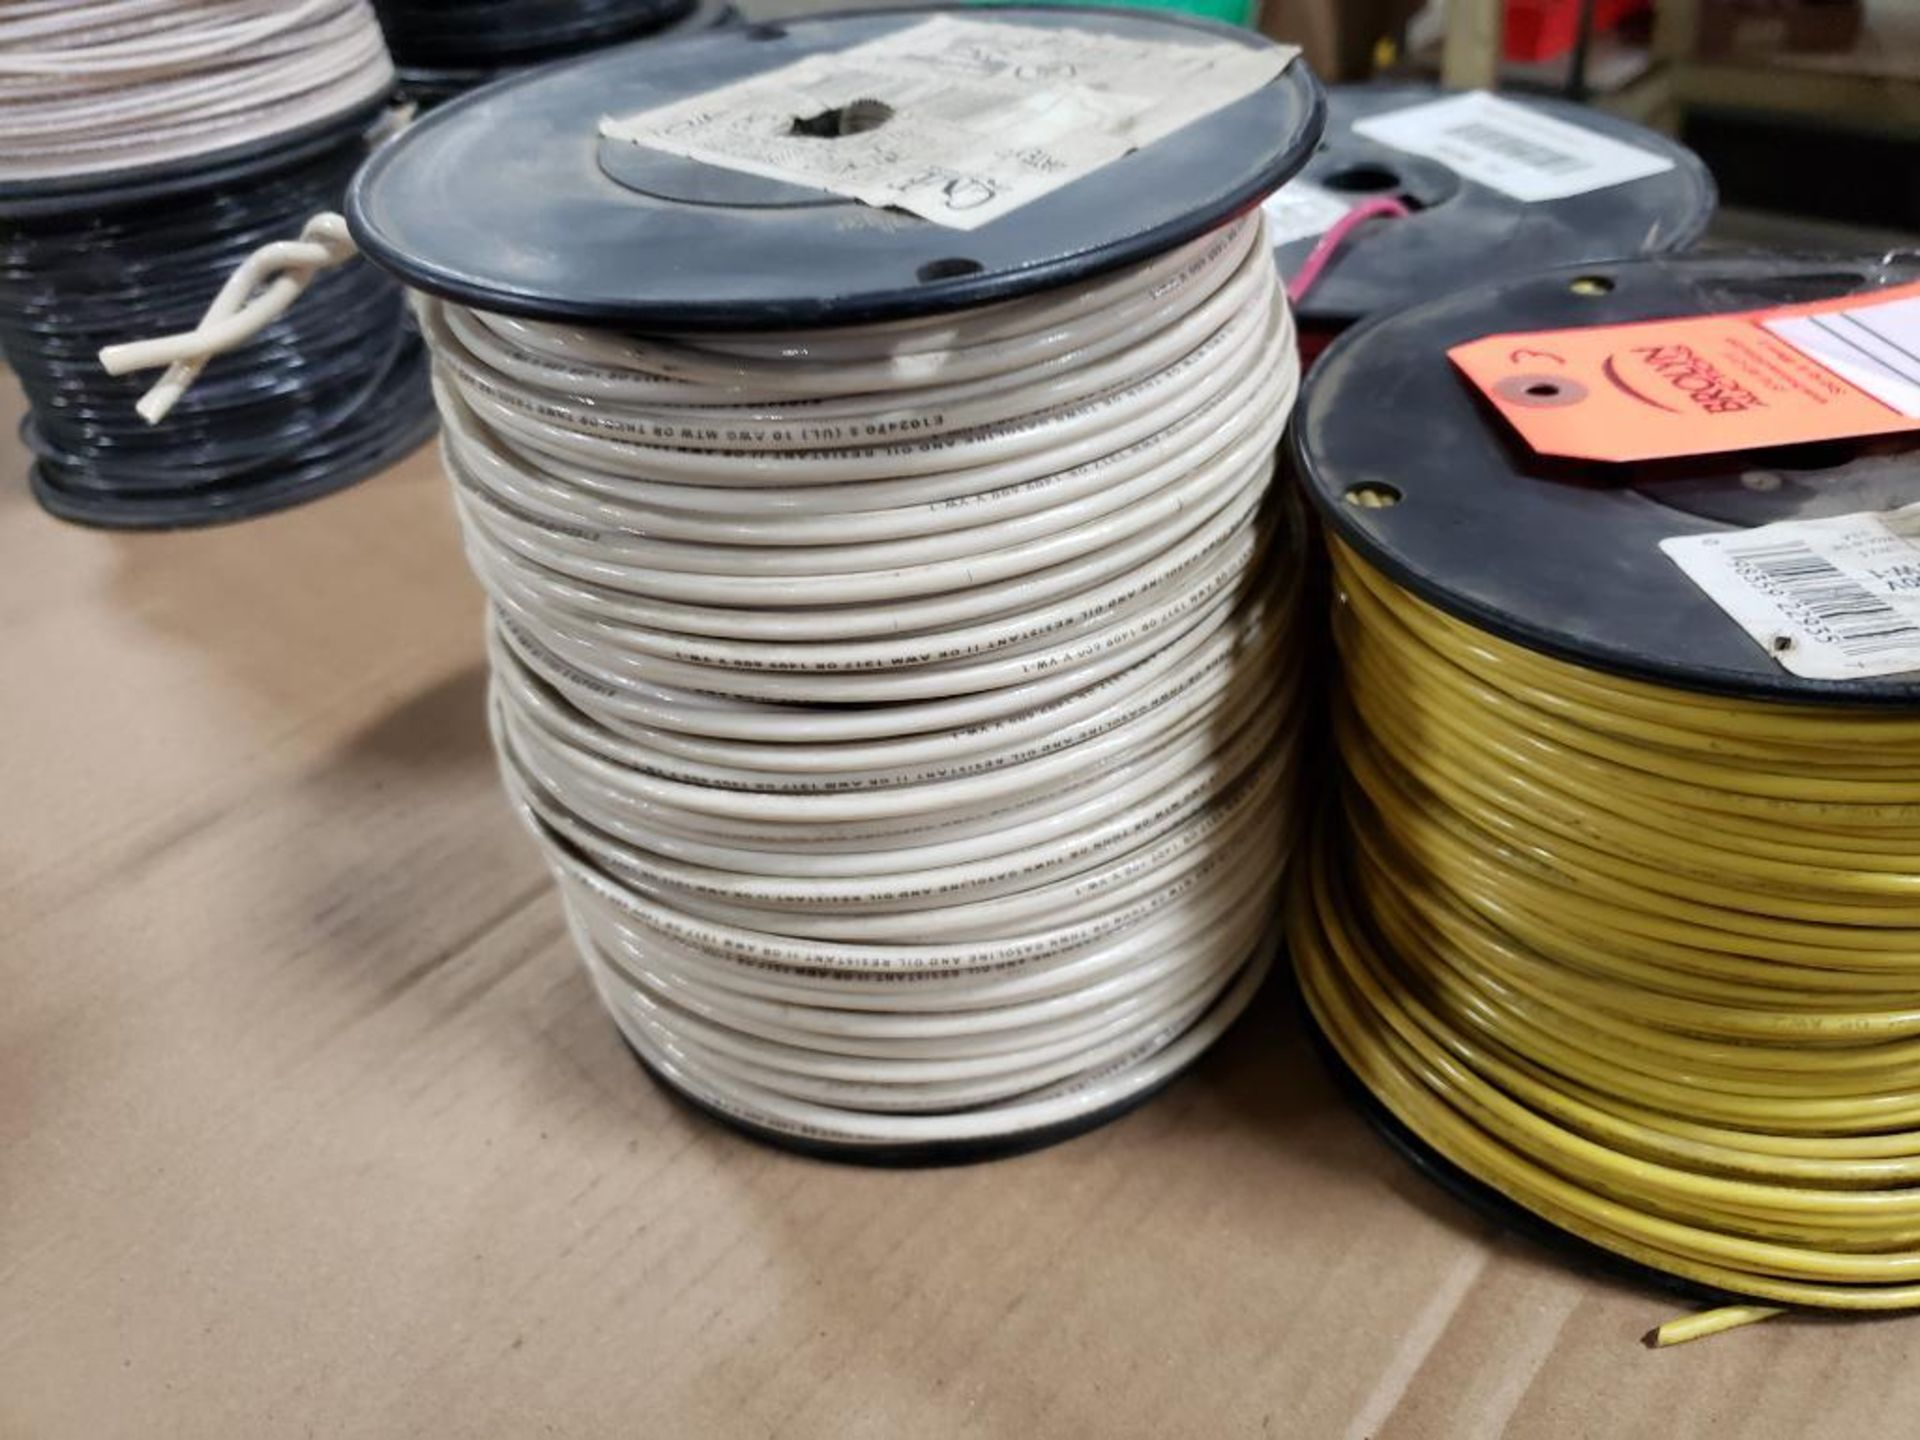 Qty 3 - Spool of ESSEX contractor wire. 12-RED THHN stranded, 10-WHITE. - Image 6 of 6